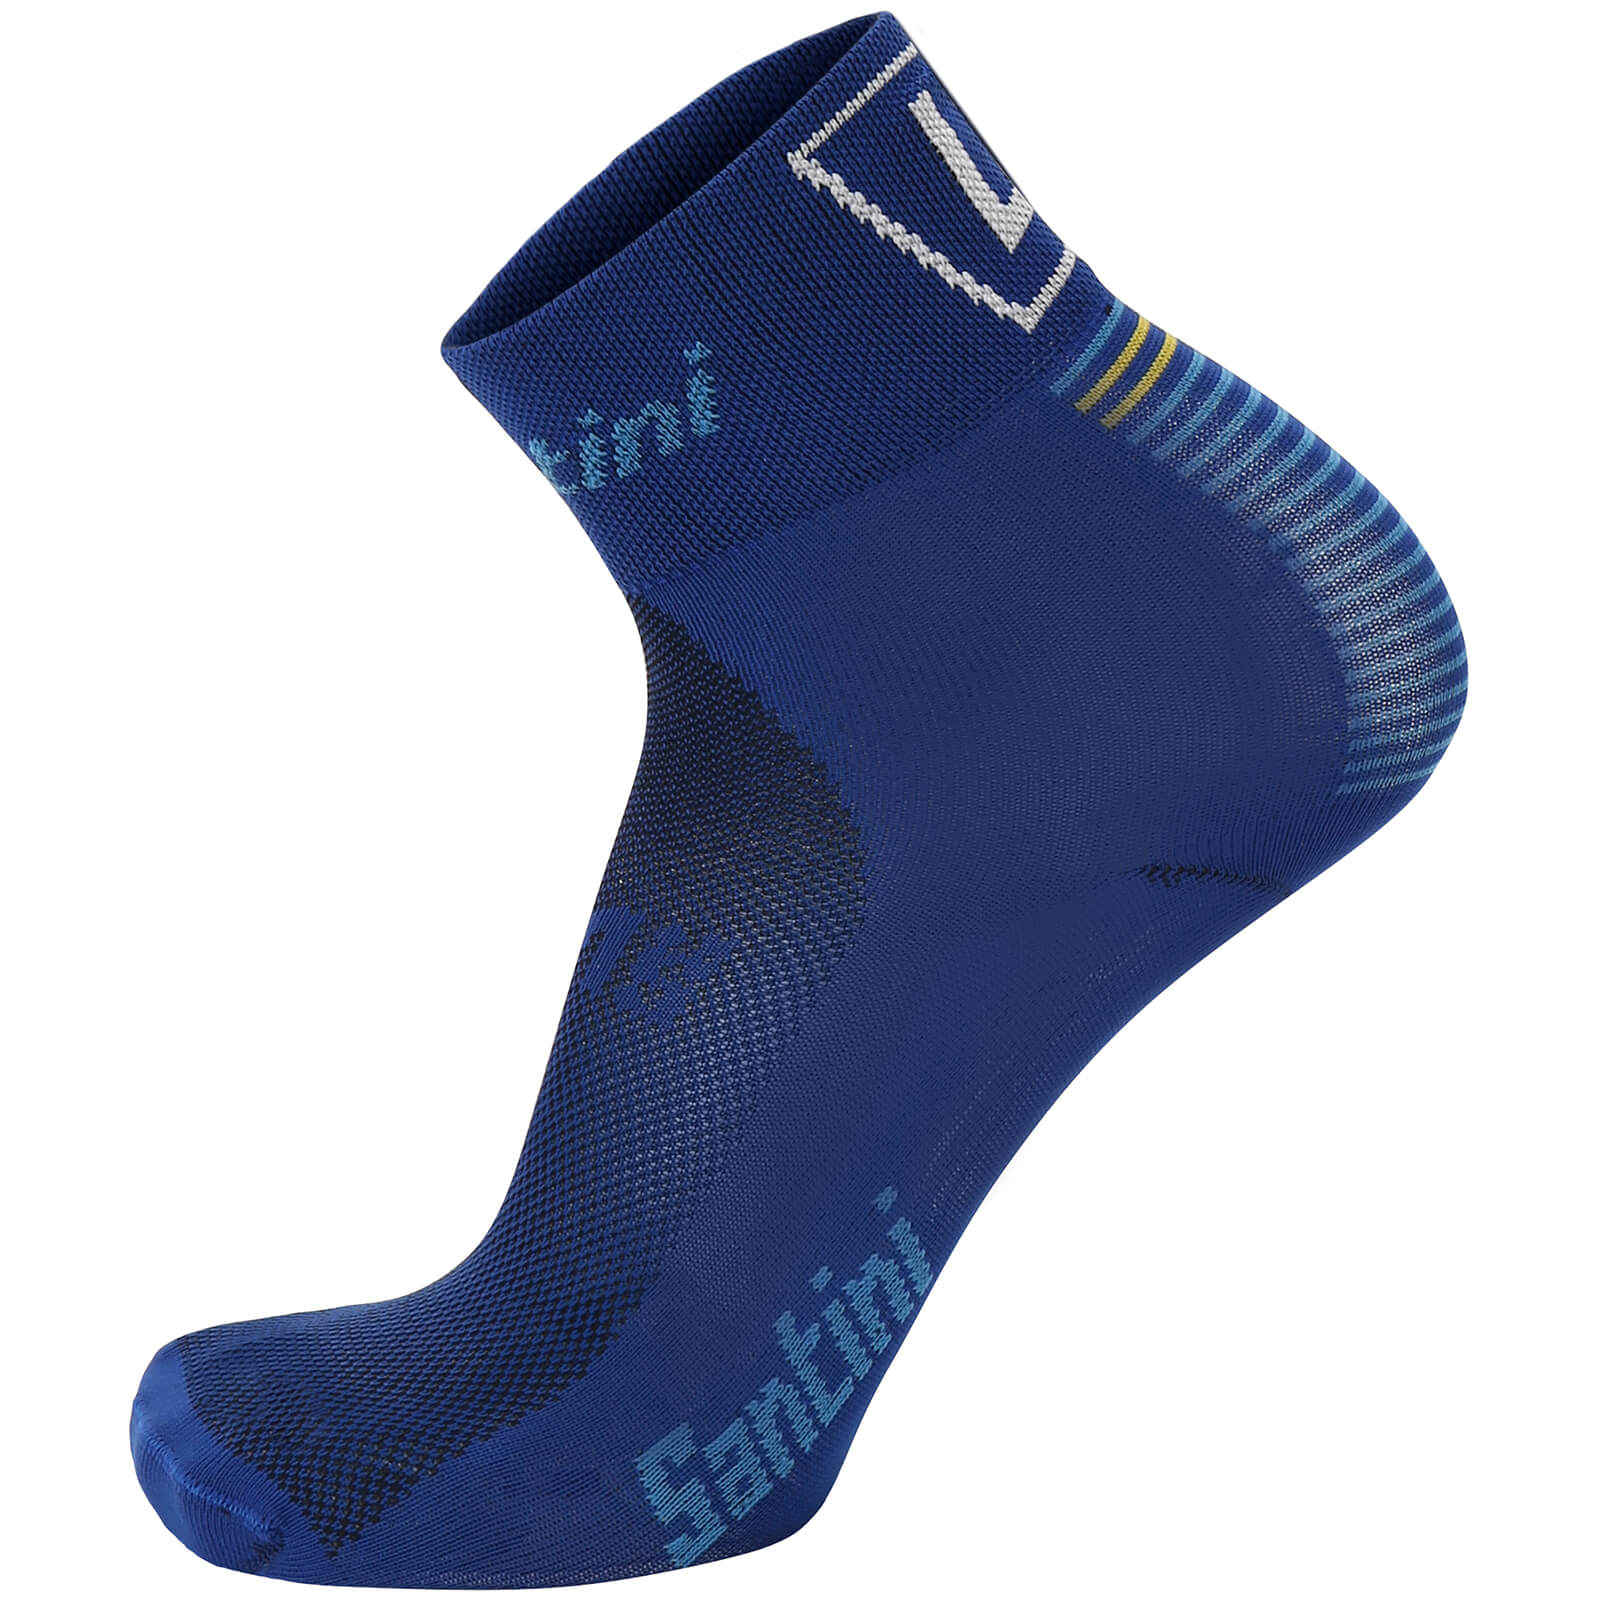 Santini La Vuelta 2017 Stage 19-20 Asturias Coolmax Socks - Blue/Yellow